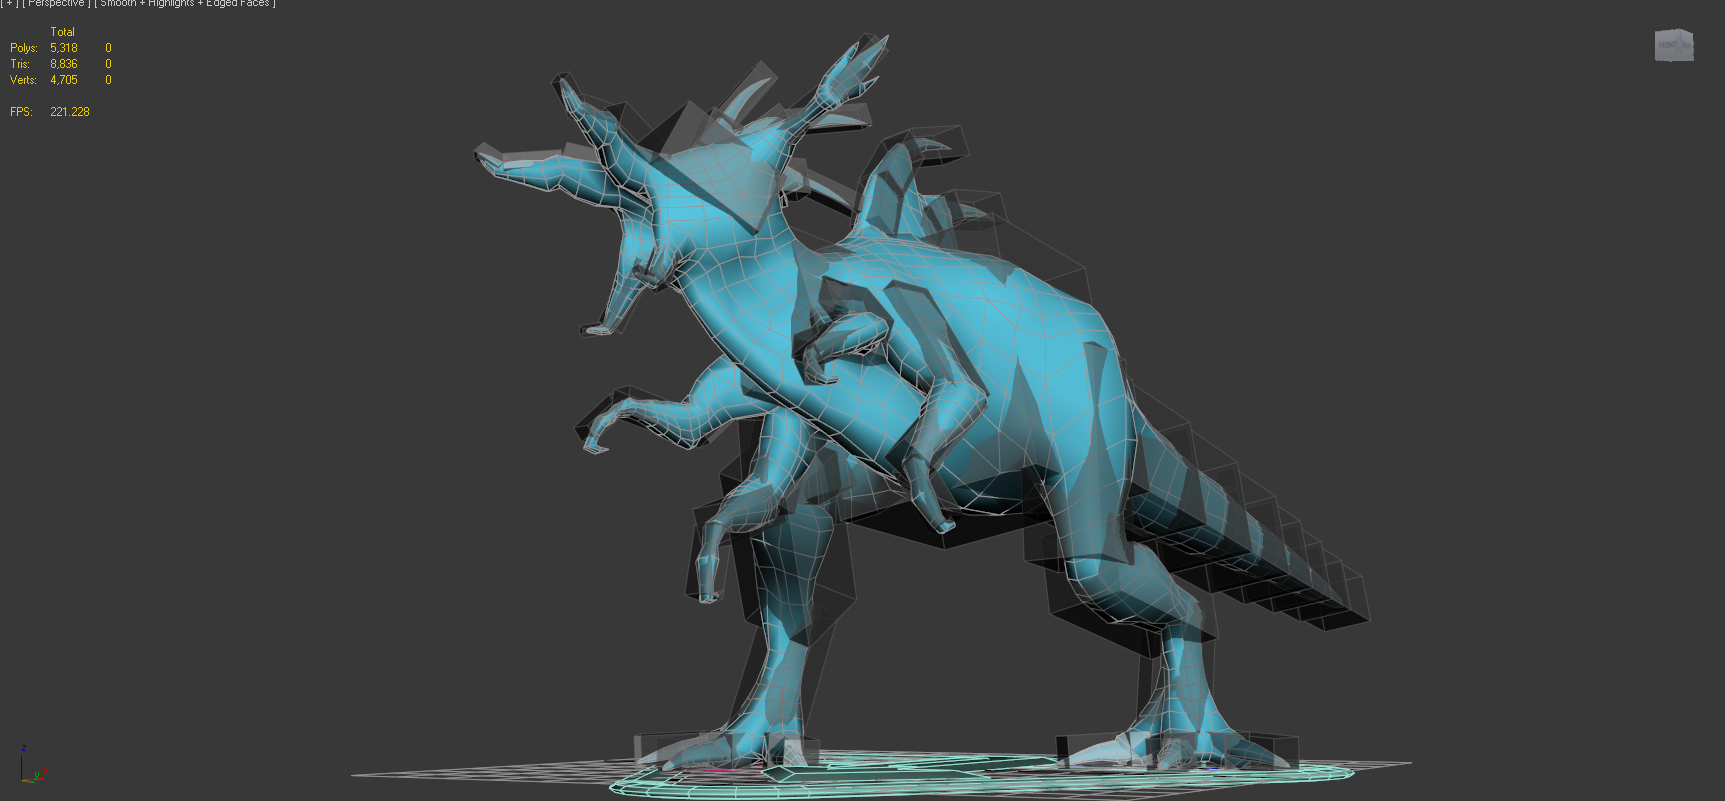 Added 3/22/19  - New creatures being animated and added.